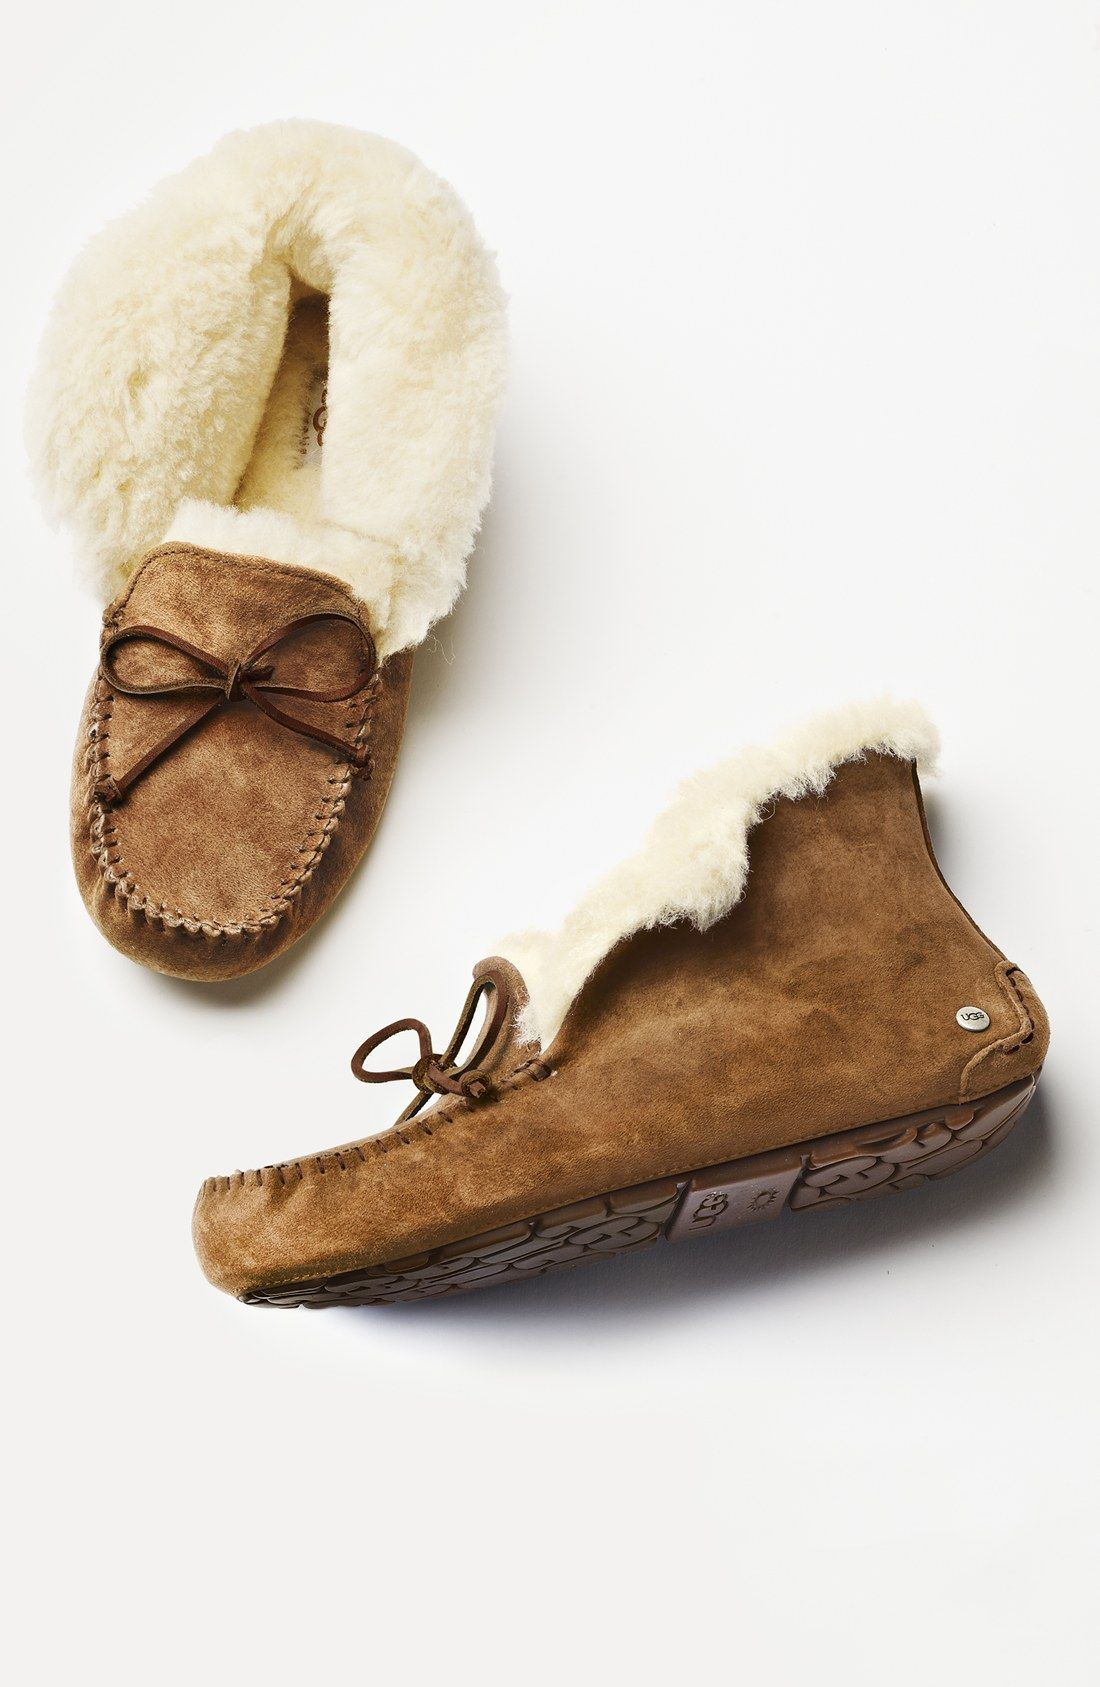 db04f5b8a2f Cozy slippers you can sink your feet into. | Winter Fashion | Uggs ...